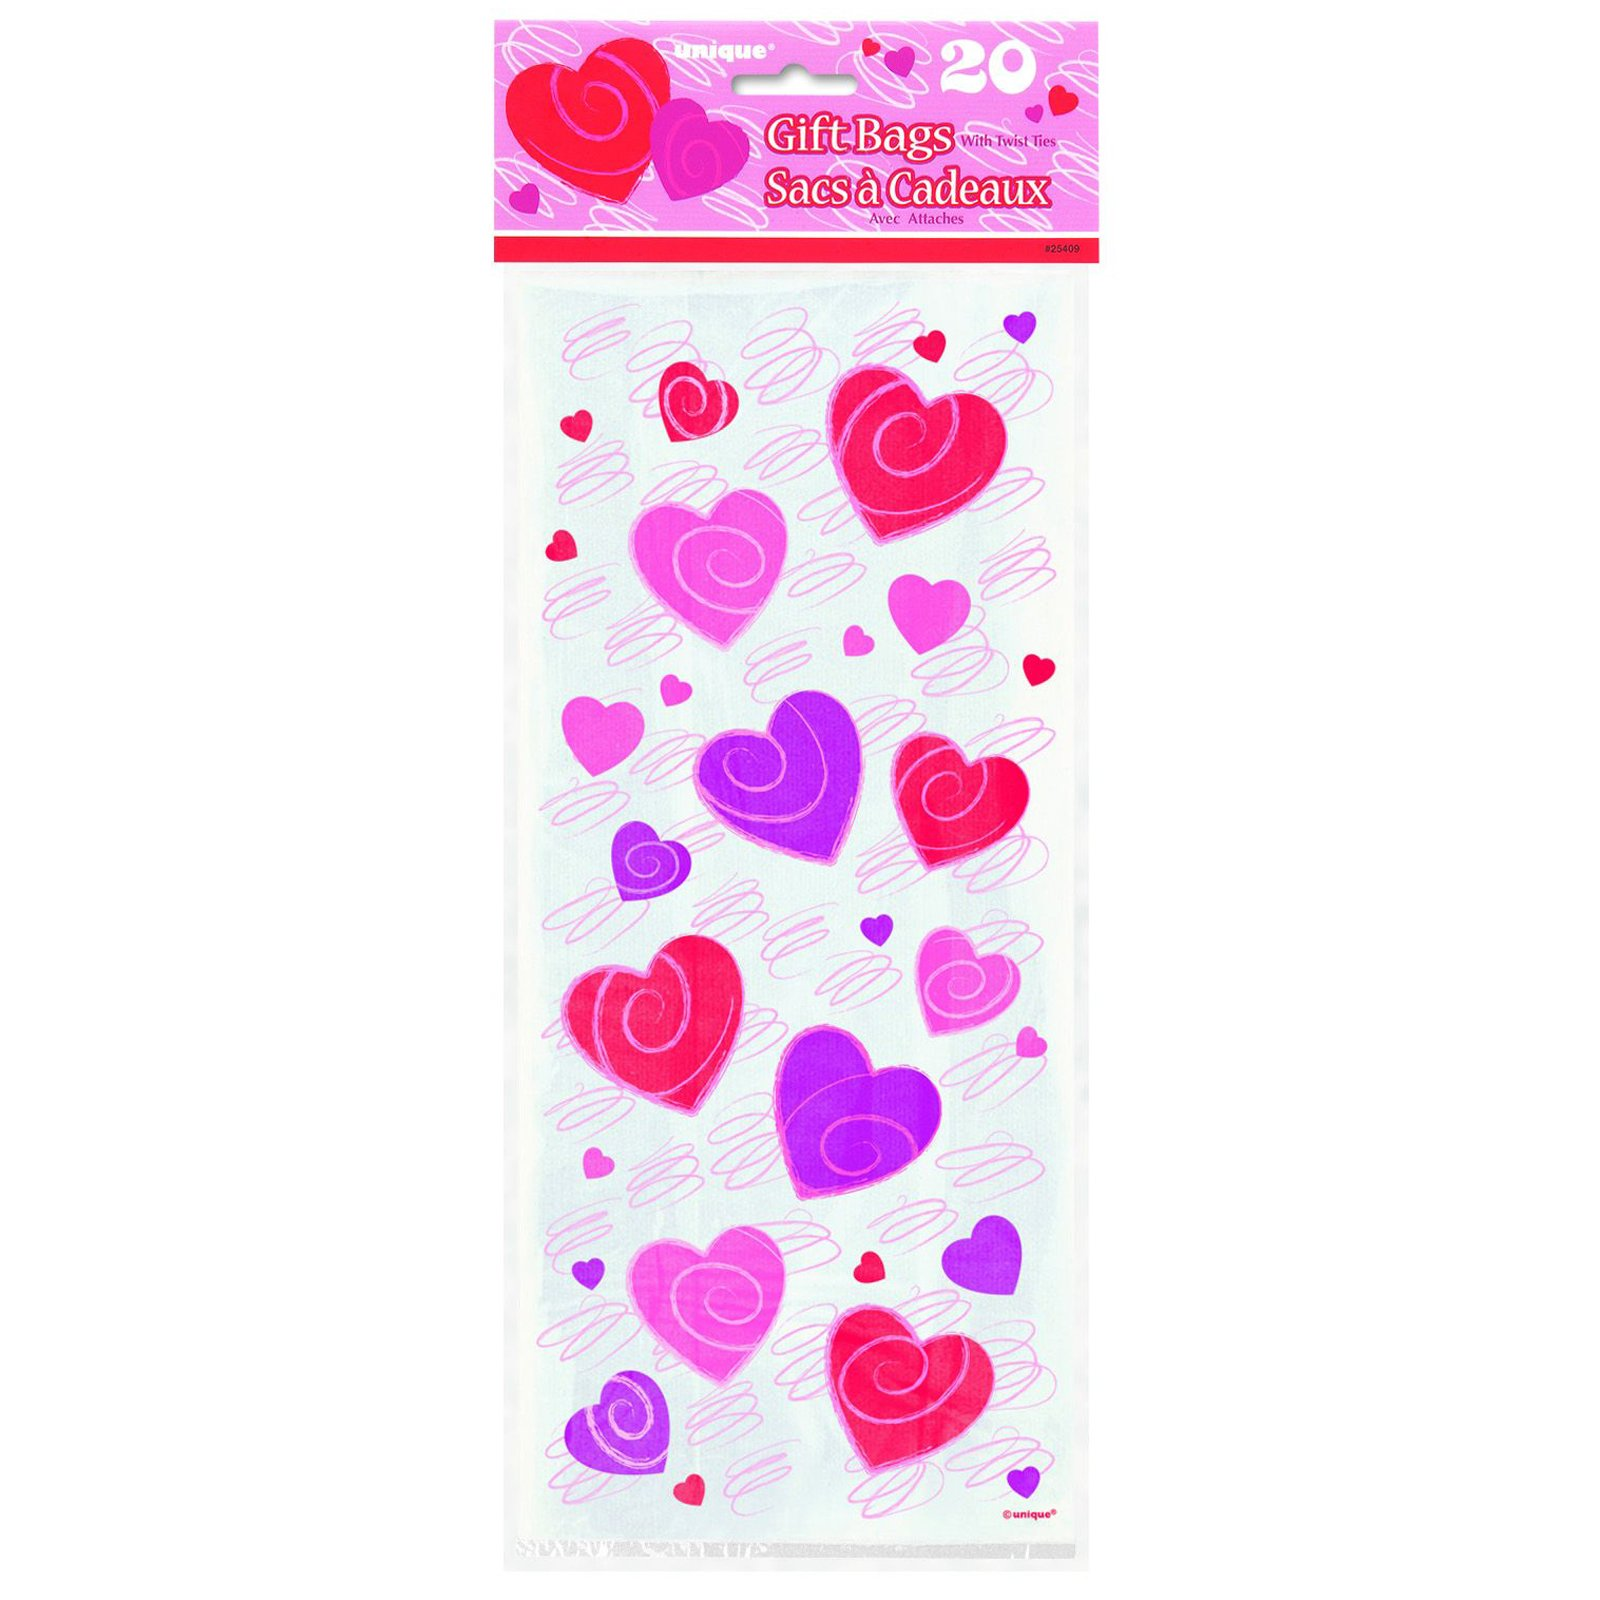 Hearts-A-Whirl Cello Bags (20 count)